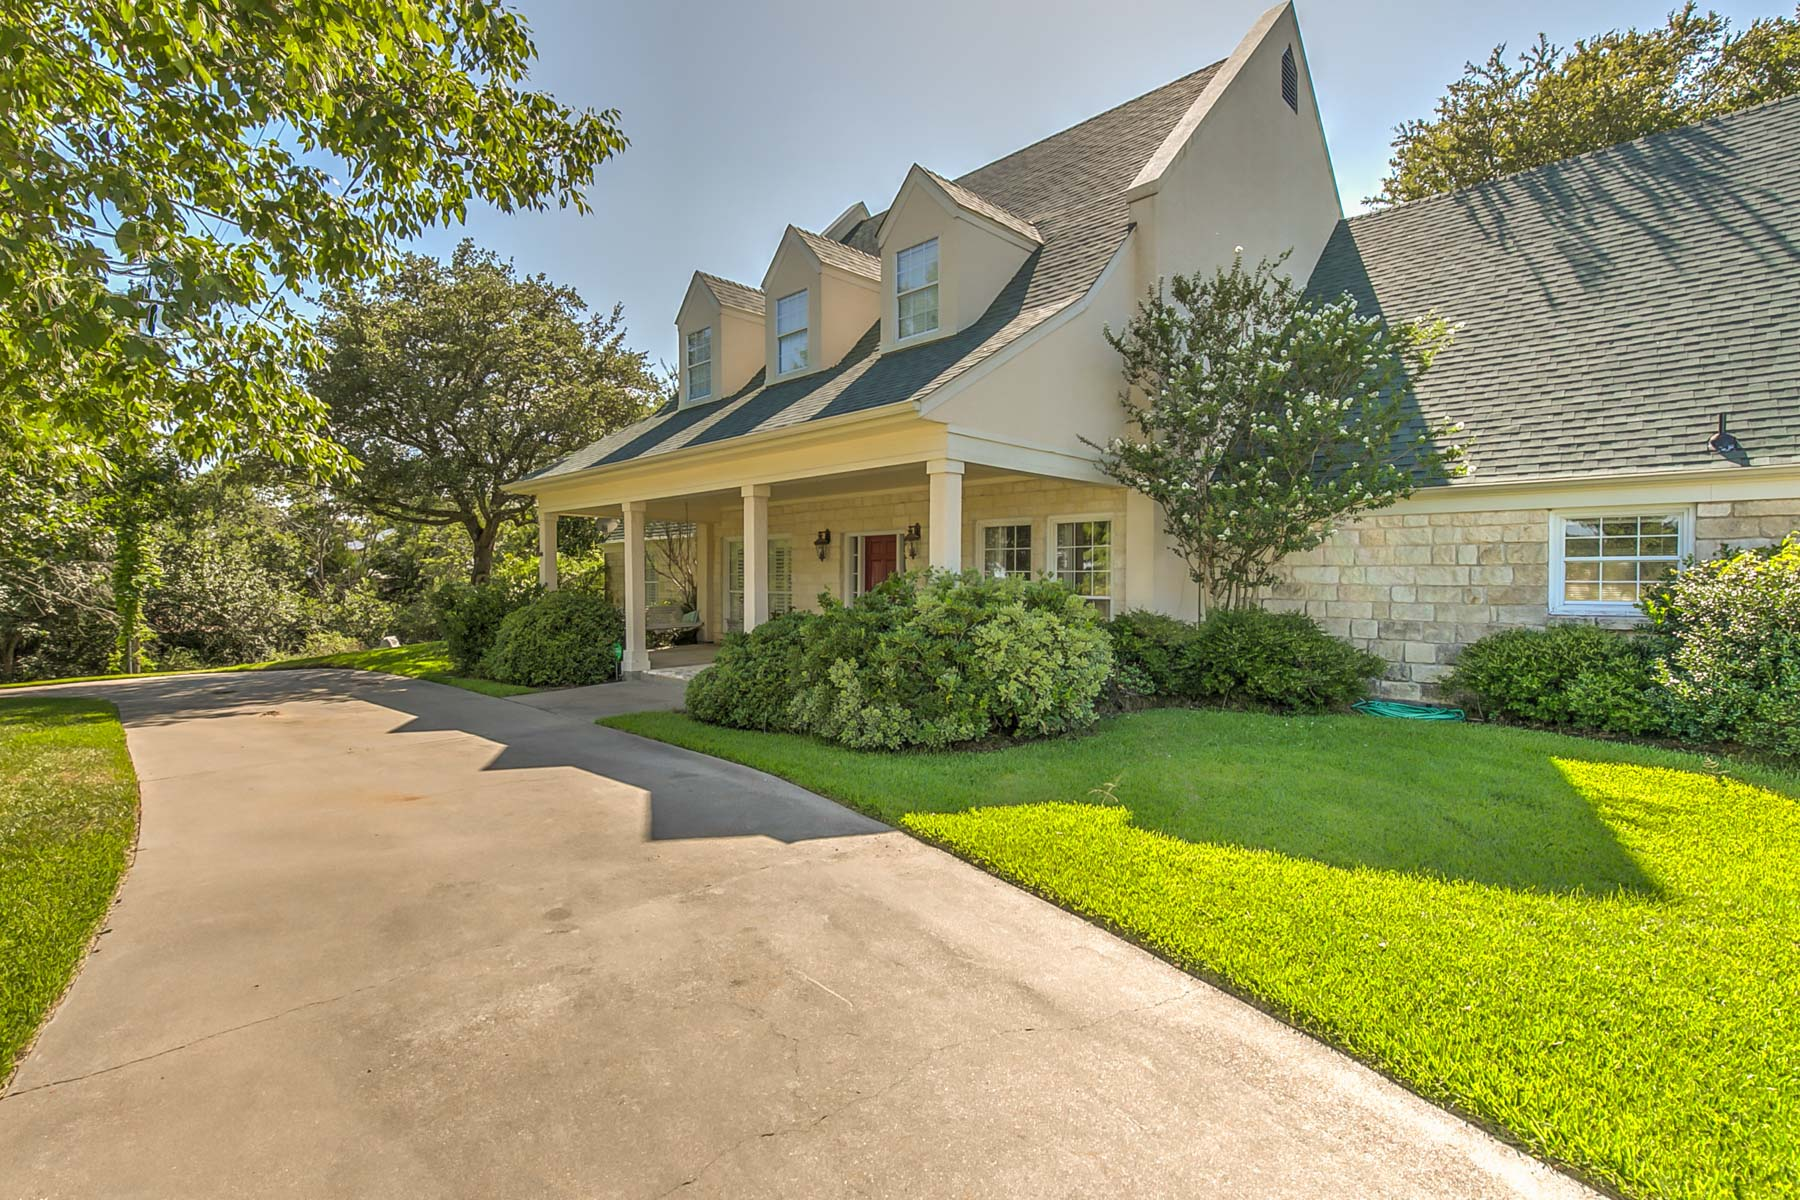 Single Family Home for Sale at Stunning Country Home 3110 South Nolan River Rd. Cleburne, Texas 76033 United States